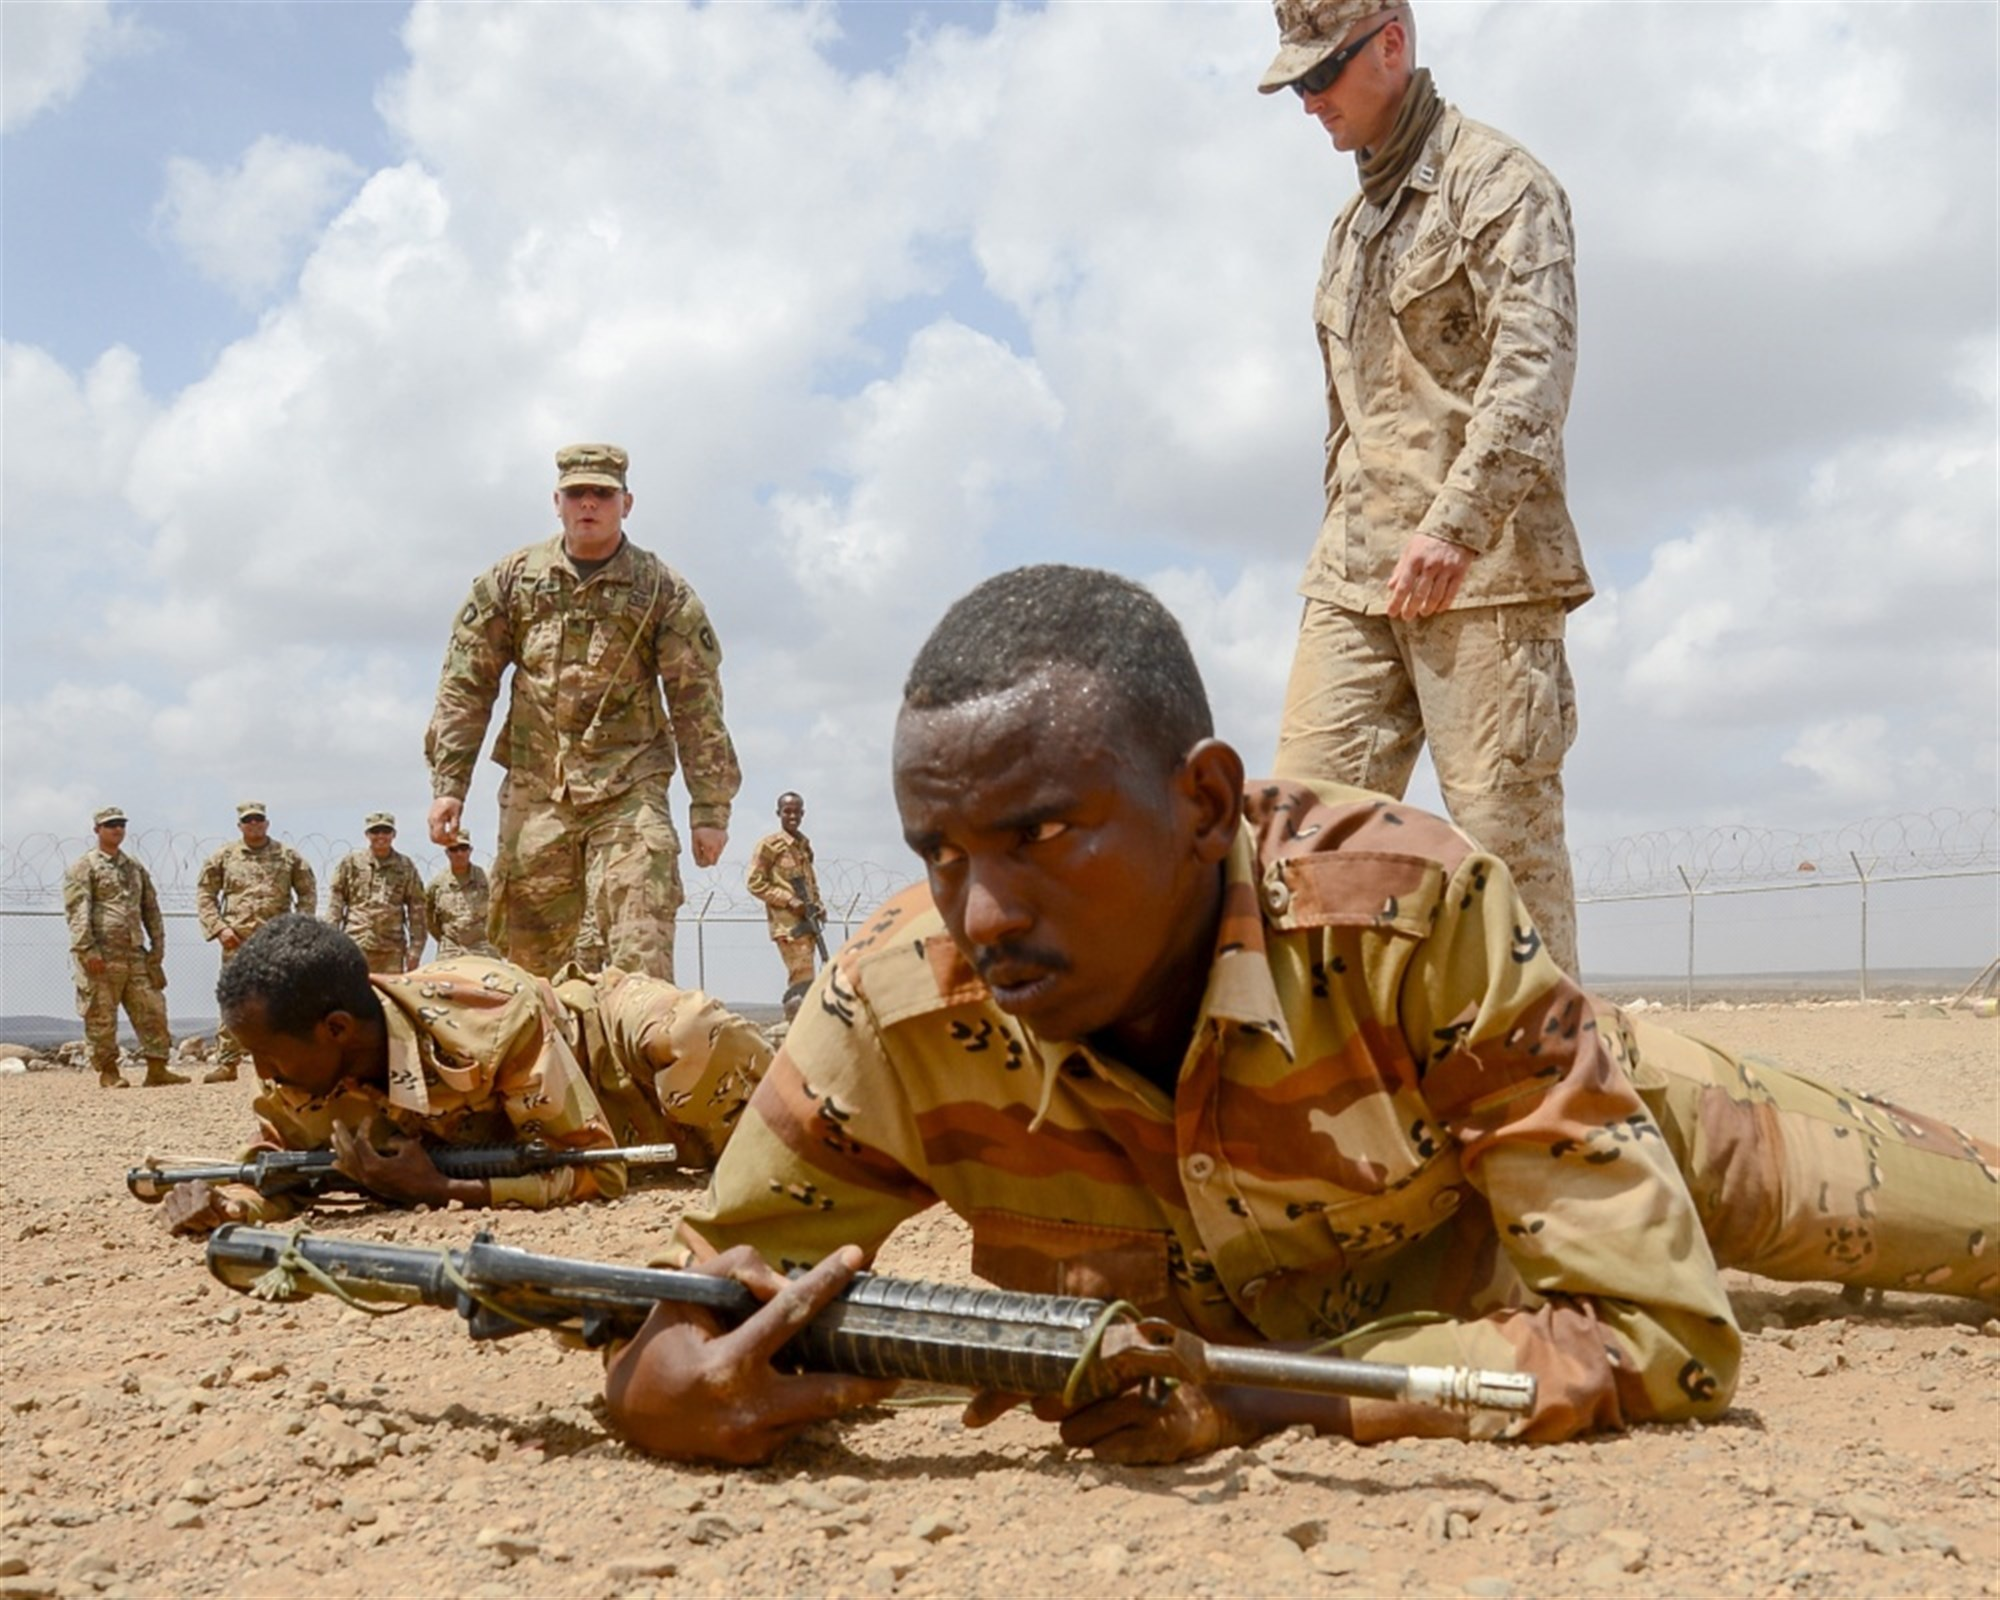 U.S. Army Sergeant Vincent Merriman, Alpha Company, 3rd Battalion, 141st Infantry Regiment, Texas National Guard, monitors Djiboutian soldiers during a react-to-fire exercise at a training site outside Djibouti City, April 16, 2018. U.S. service members have been training the Djiboutian Army's Rapid Intervention Battalion, a newly formed crisis response unit.